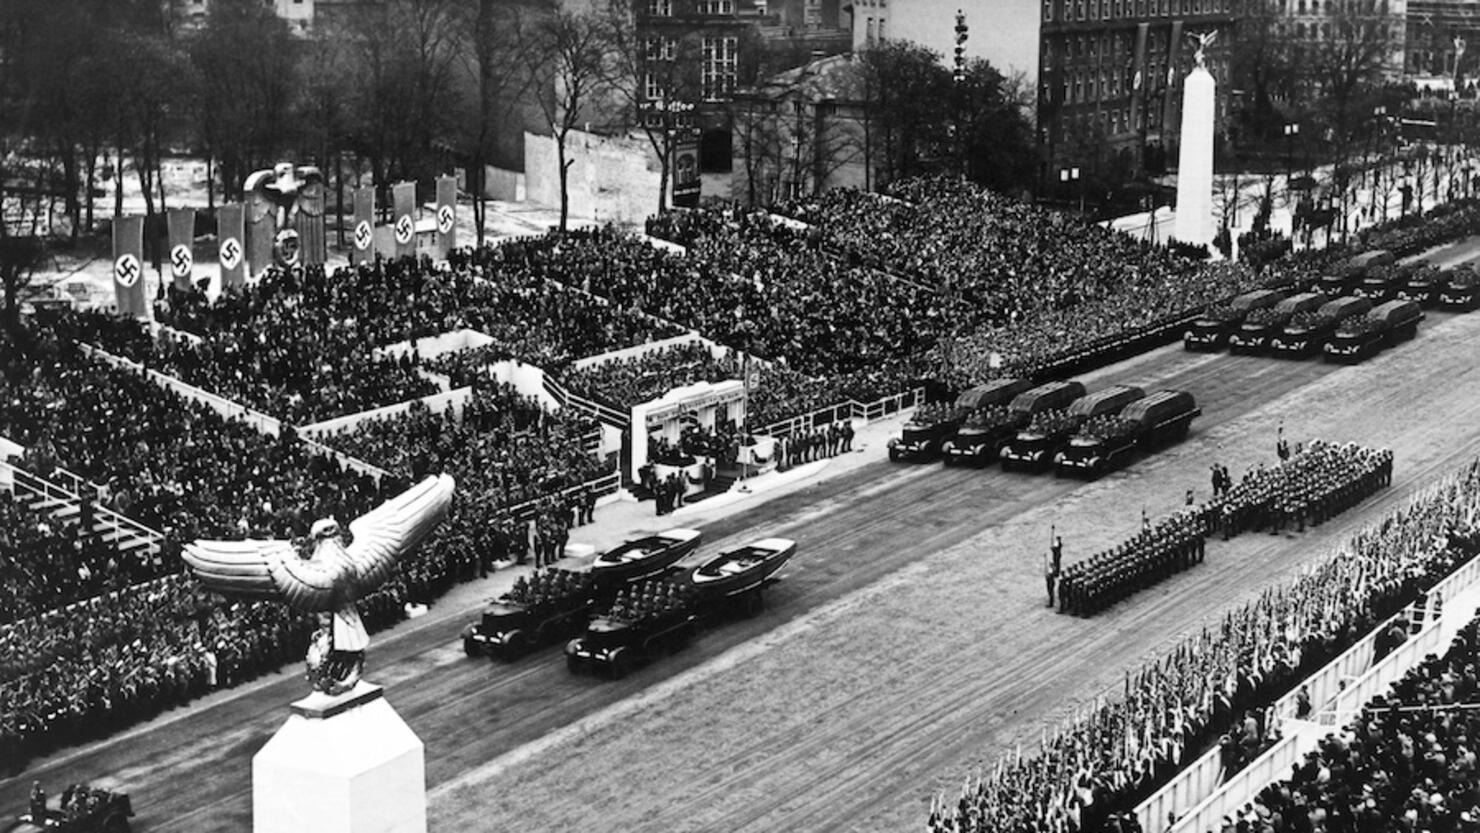 Military Parade For The Celebration Of The 50th Birthday Of Adolf Hitler